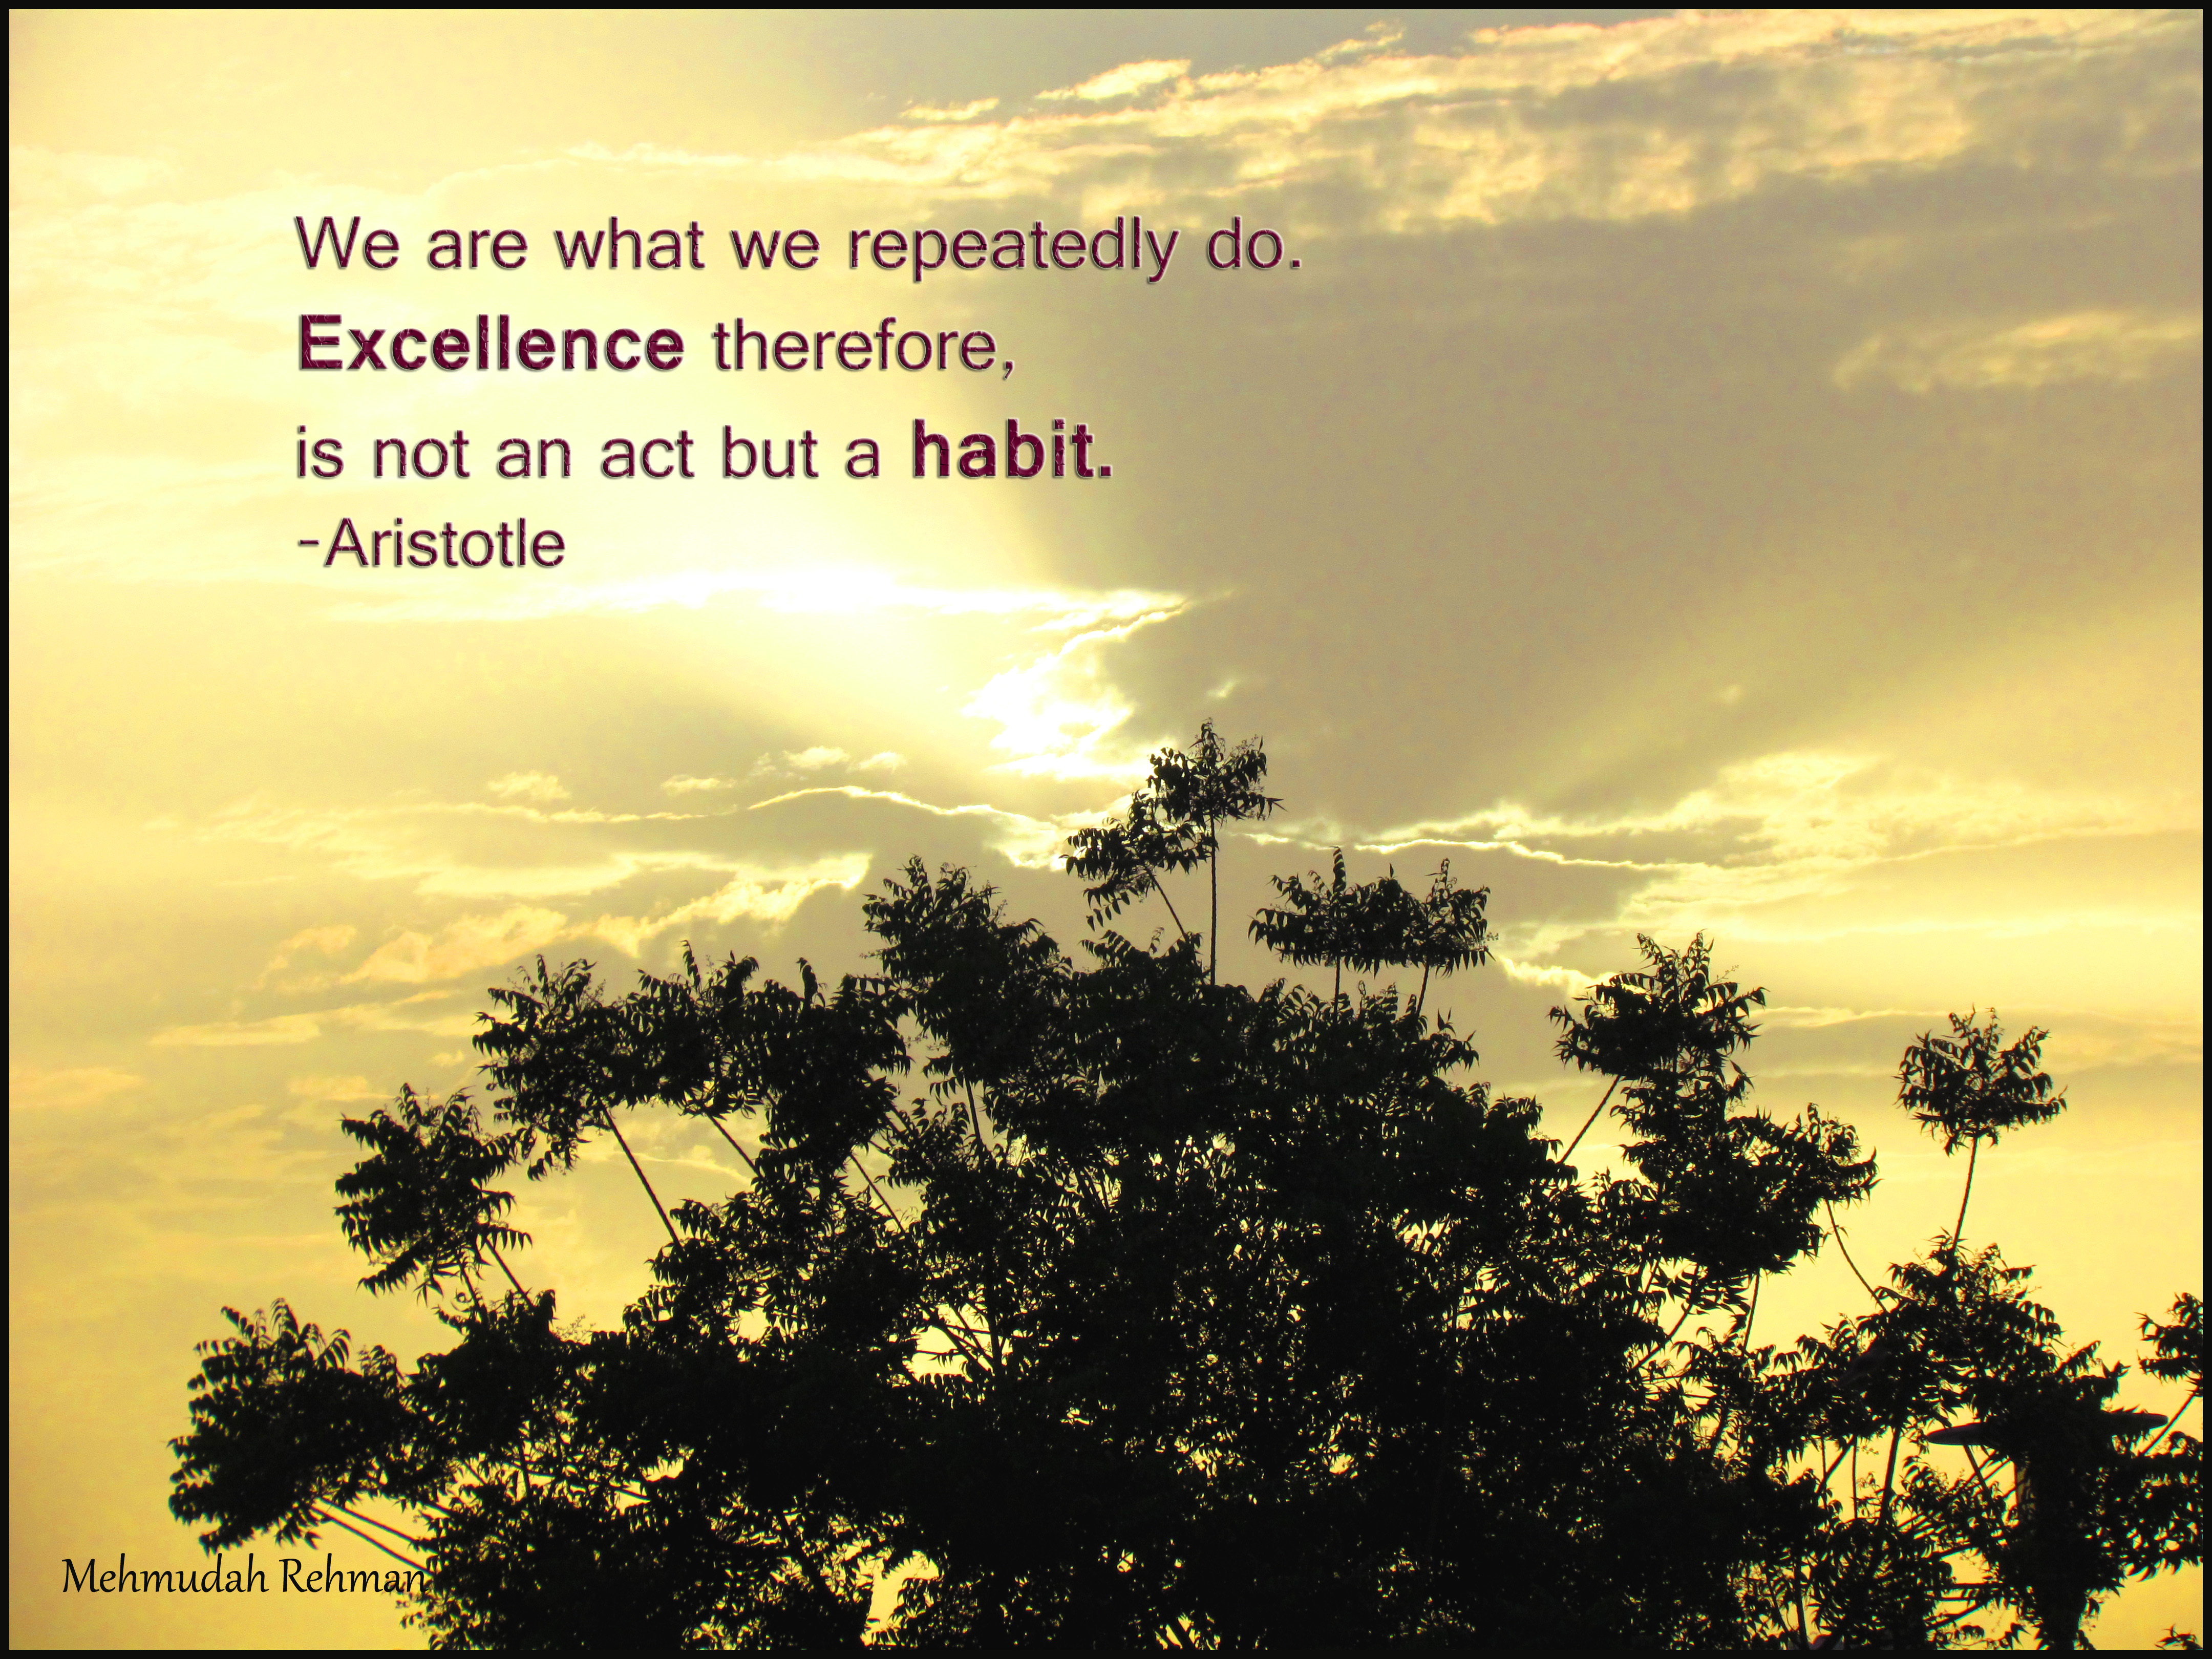 aristotle-self-esteem quotes